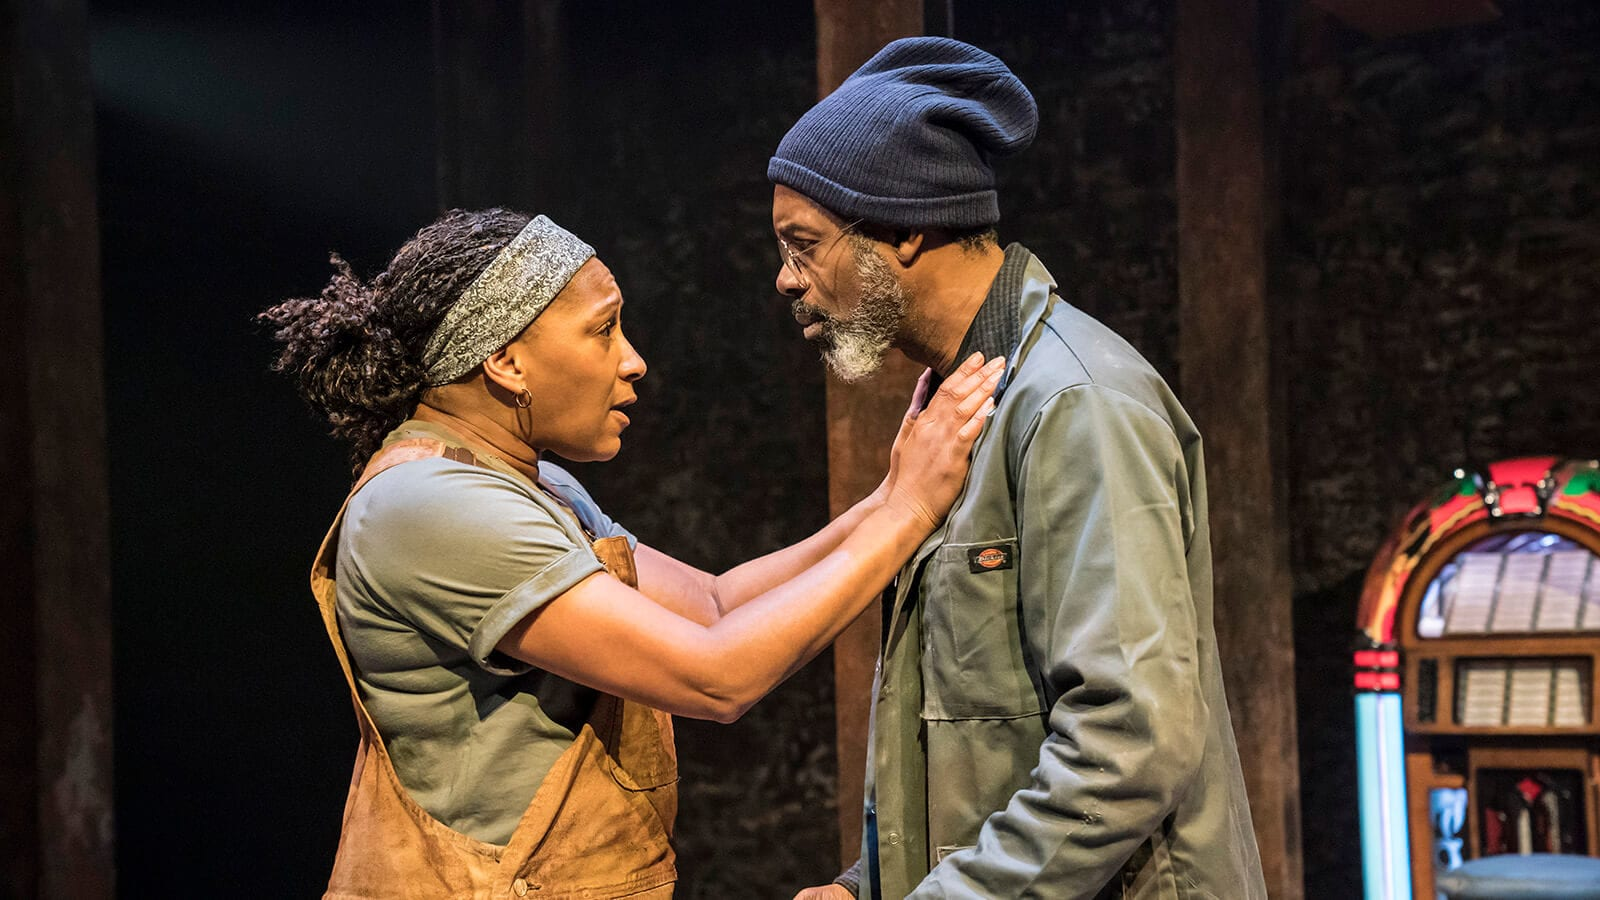 Clare Perkins and Wil Johnson in Sweat at the Donmar Warehouse. Photo Johan Persson